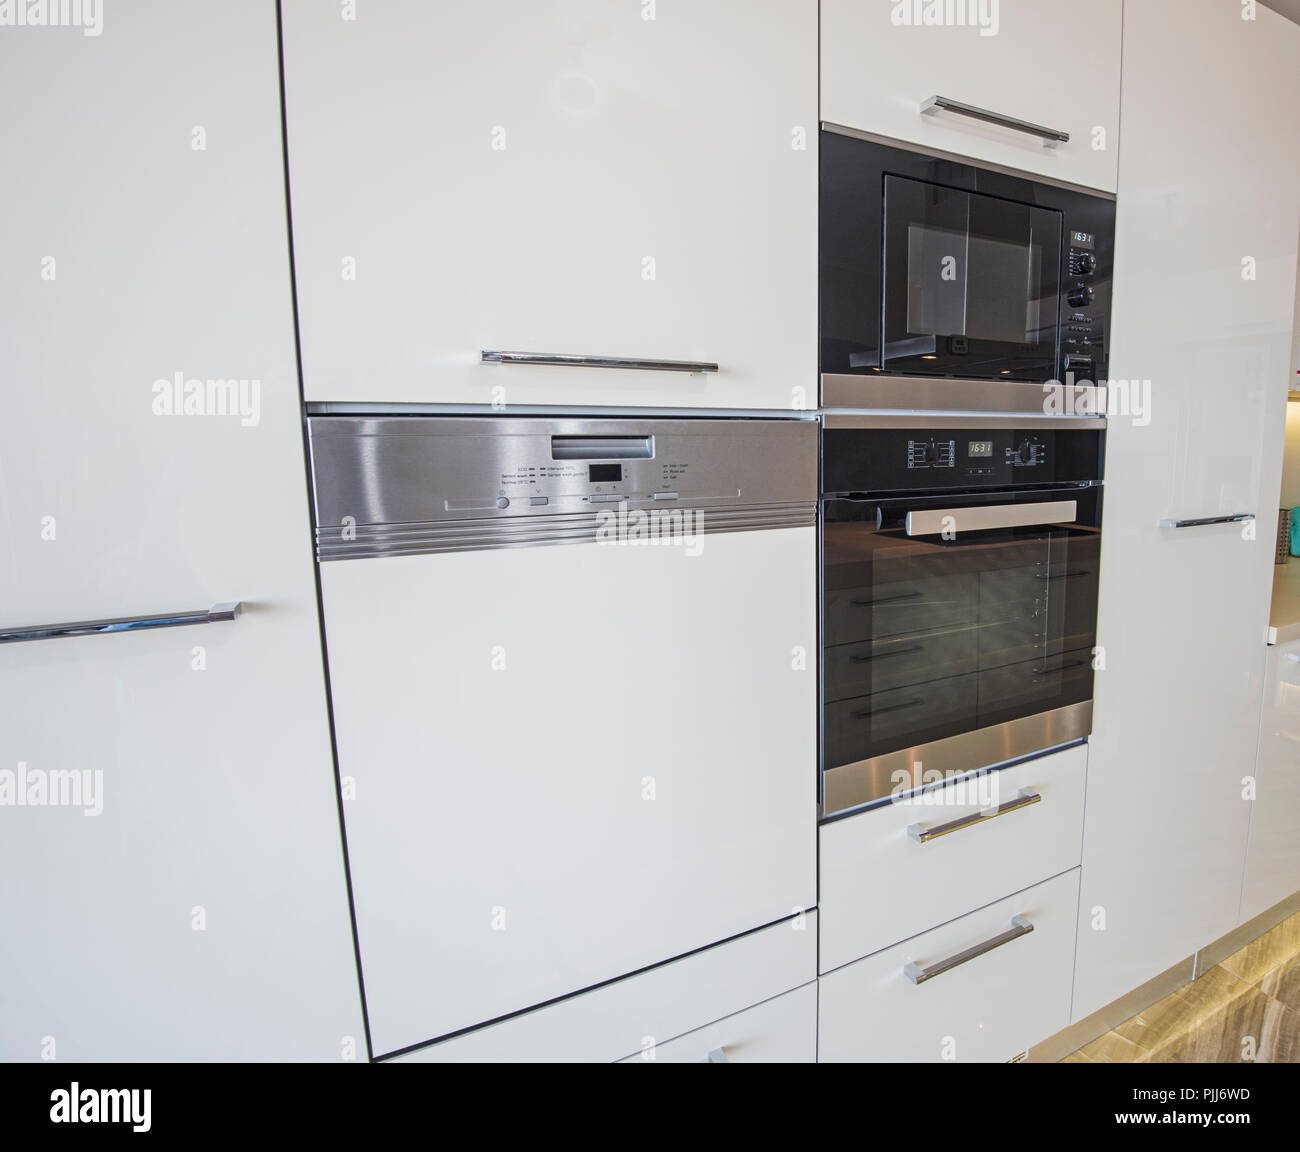 Interior Design Decor Showing Modern Kitchen And Oven Cooker Appliances In  Luxury Apartment Showroom